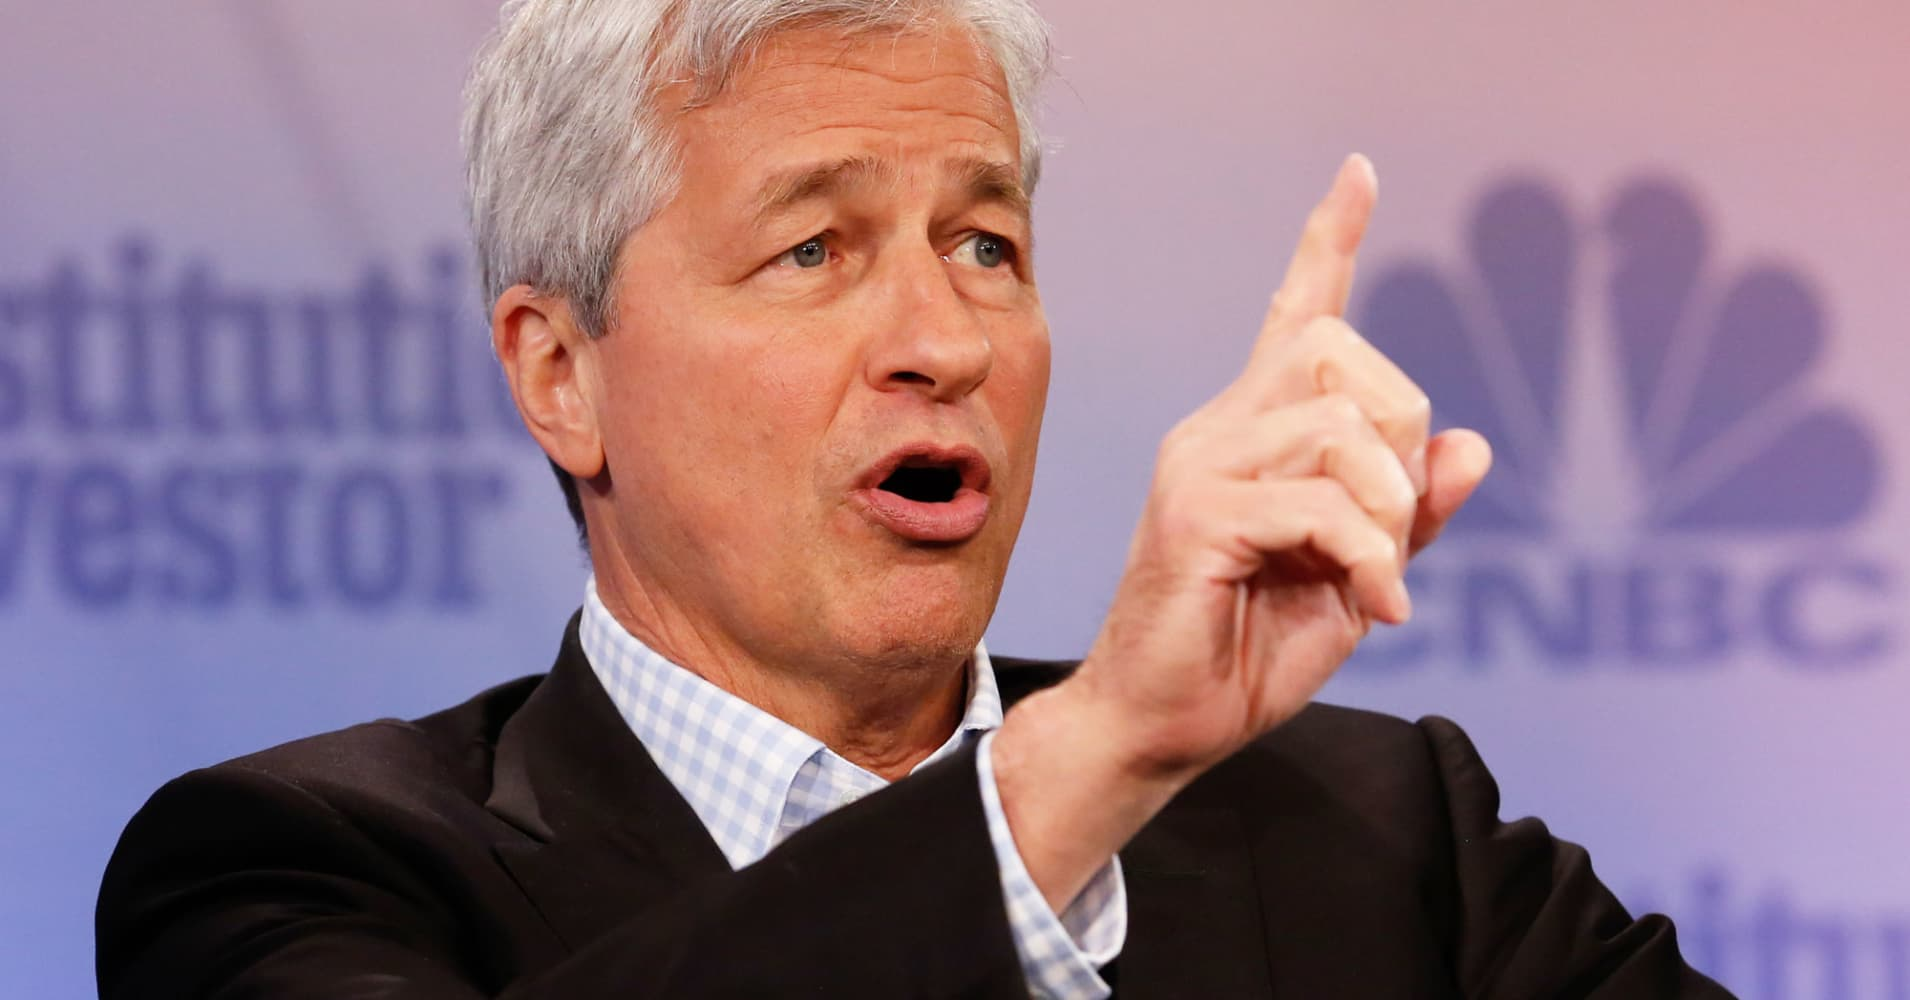 Jamie Dimon, CEO of JP Morgan Chase